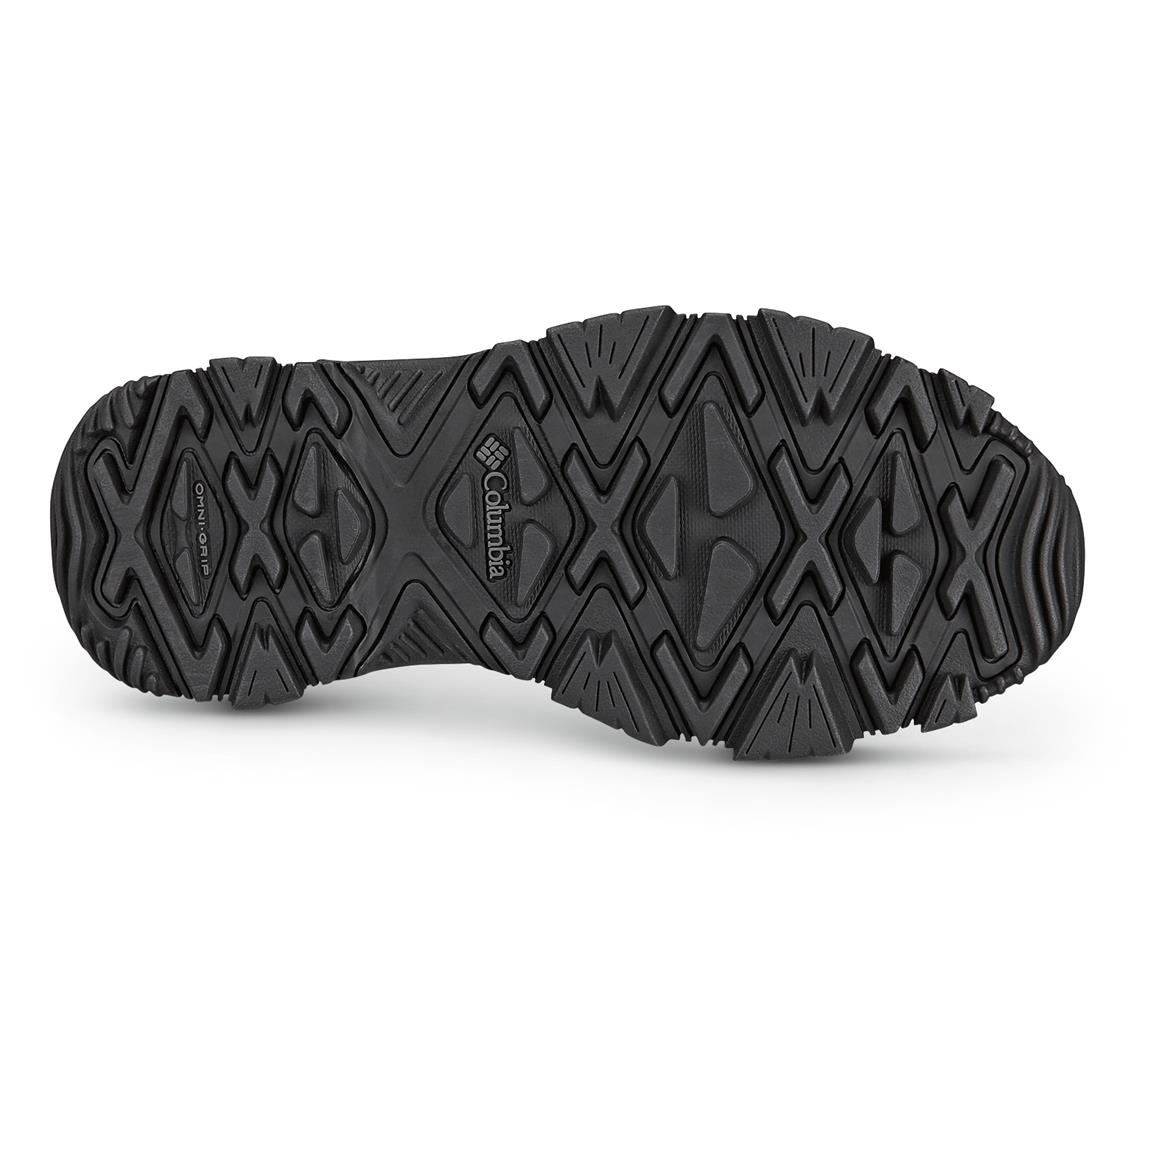 Omni-Grip non-marking outsole with winter-specific lug pattern digs into snow